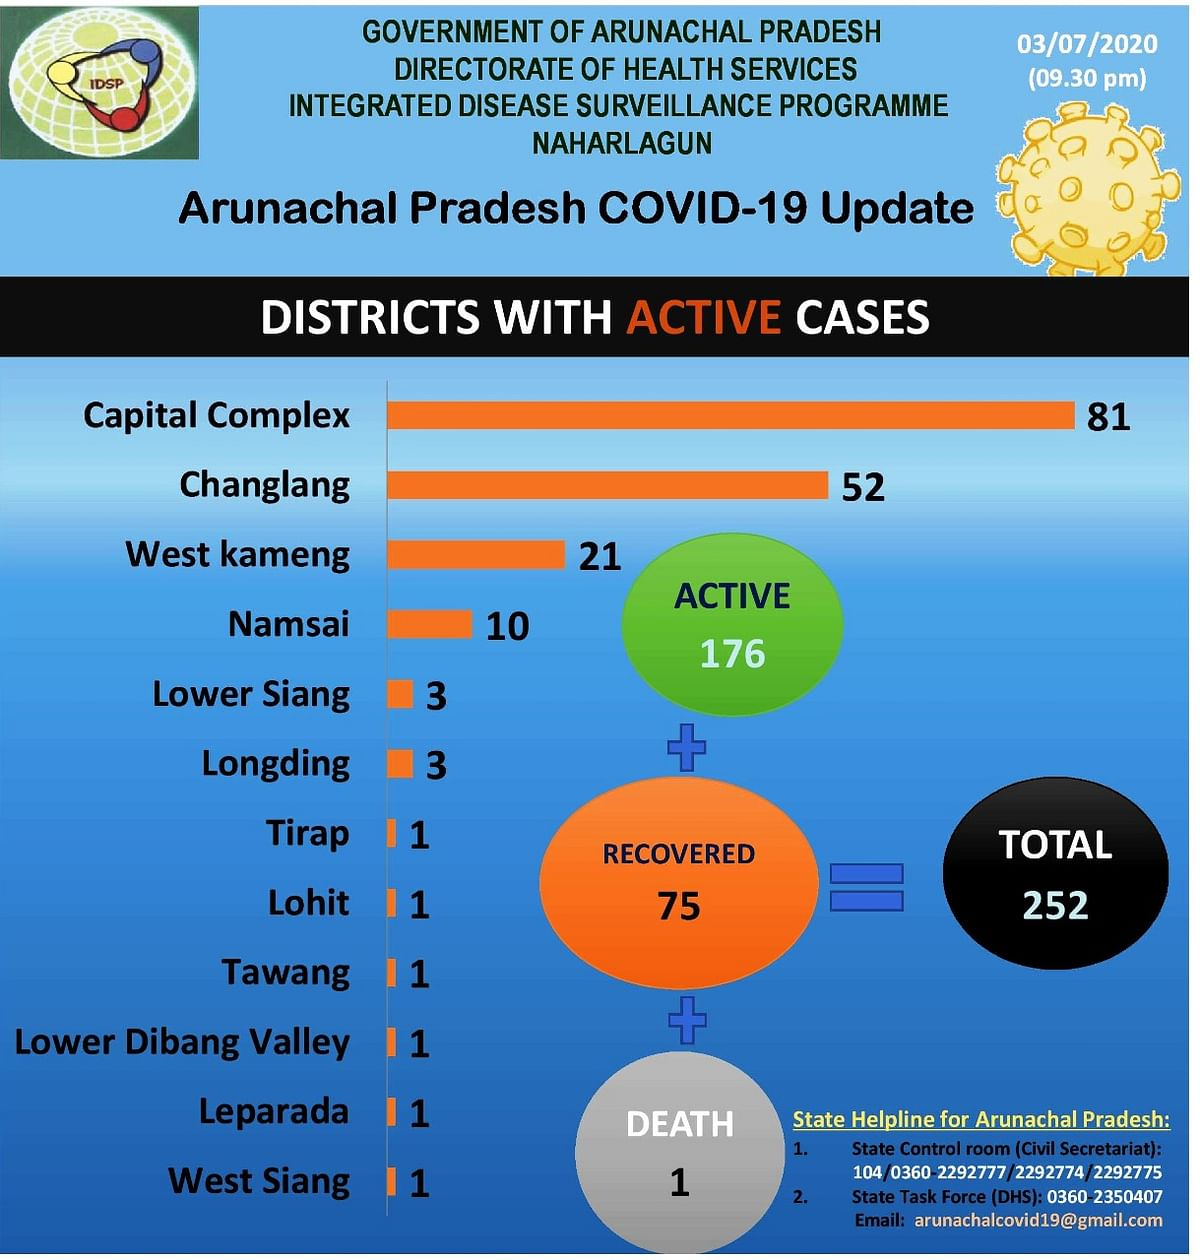 With 81 active cases, the capital complex has the highest number of COVID-19 cases in the state